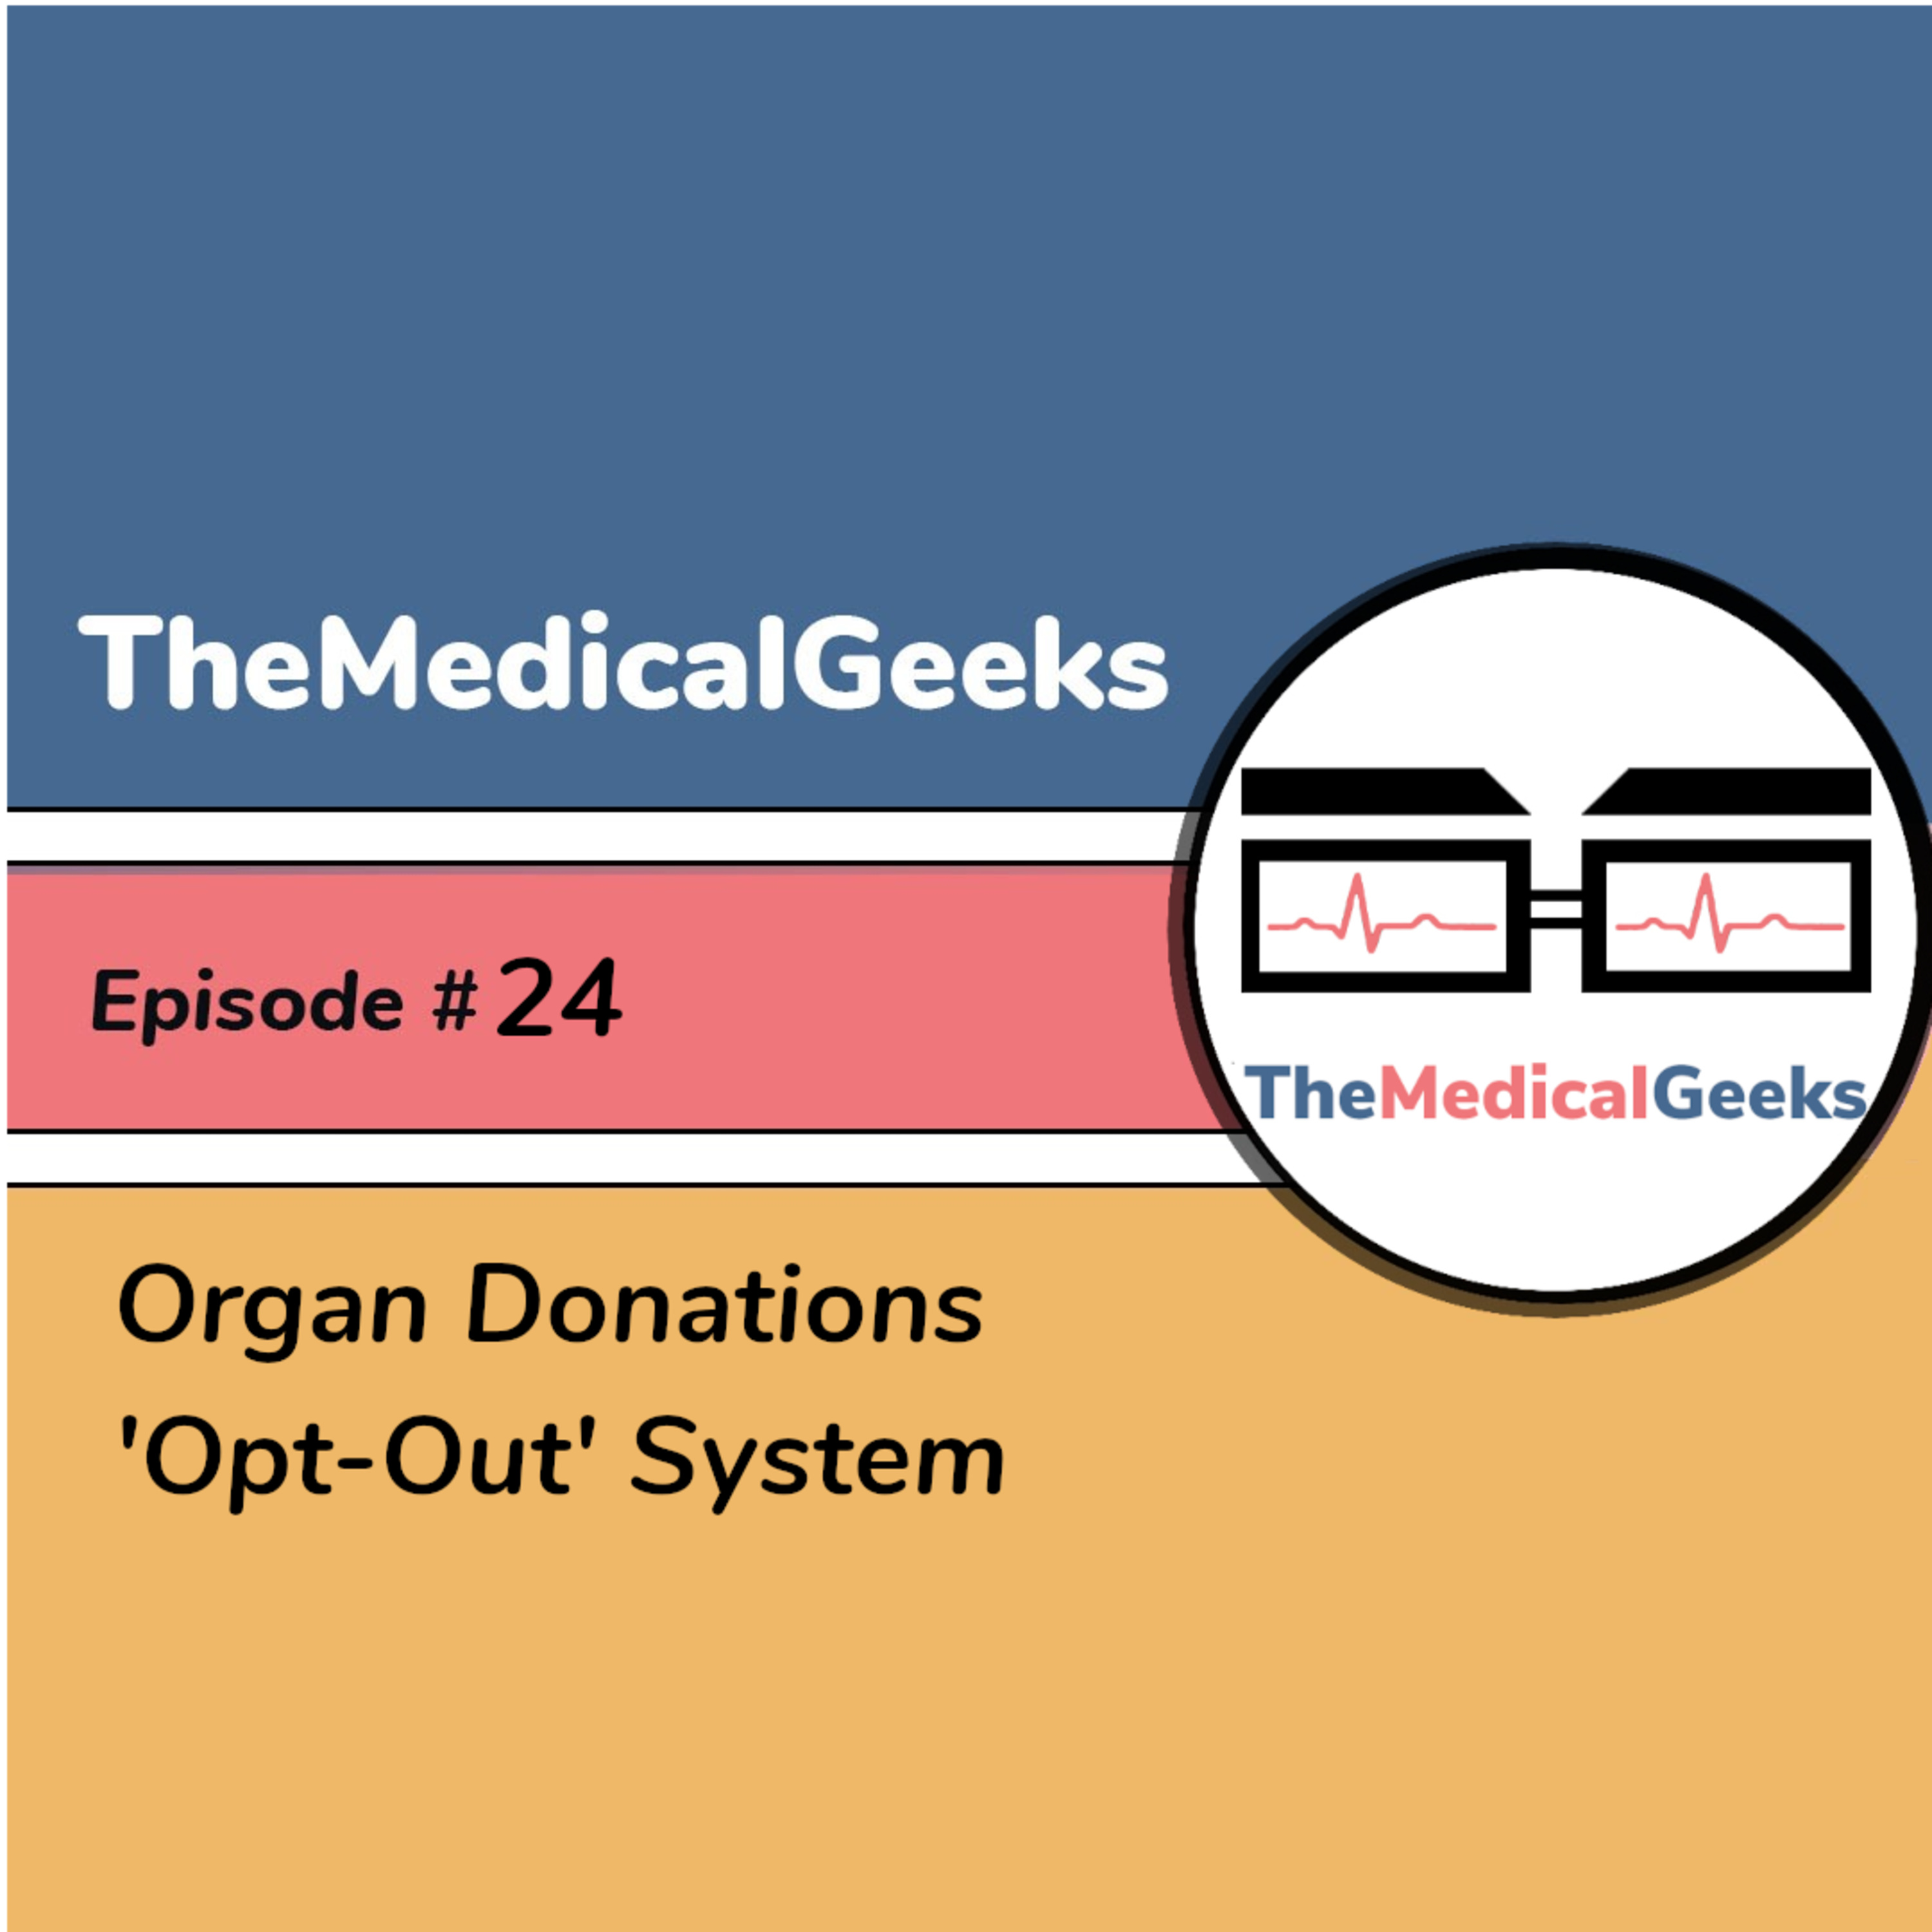 #24 Episode 24: The New Organ Donation System